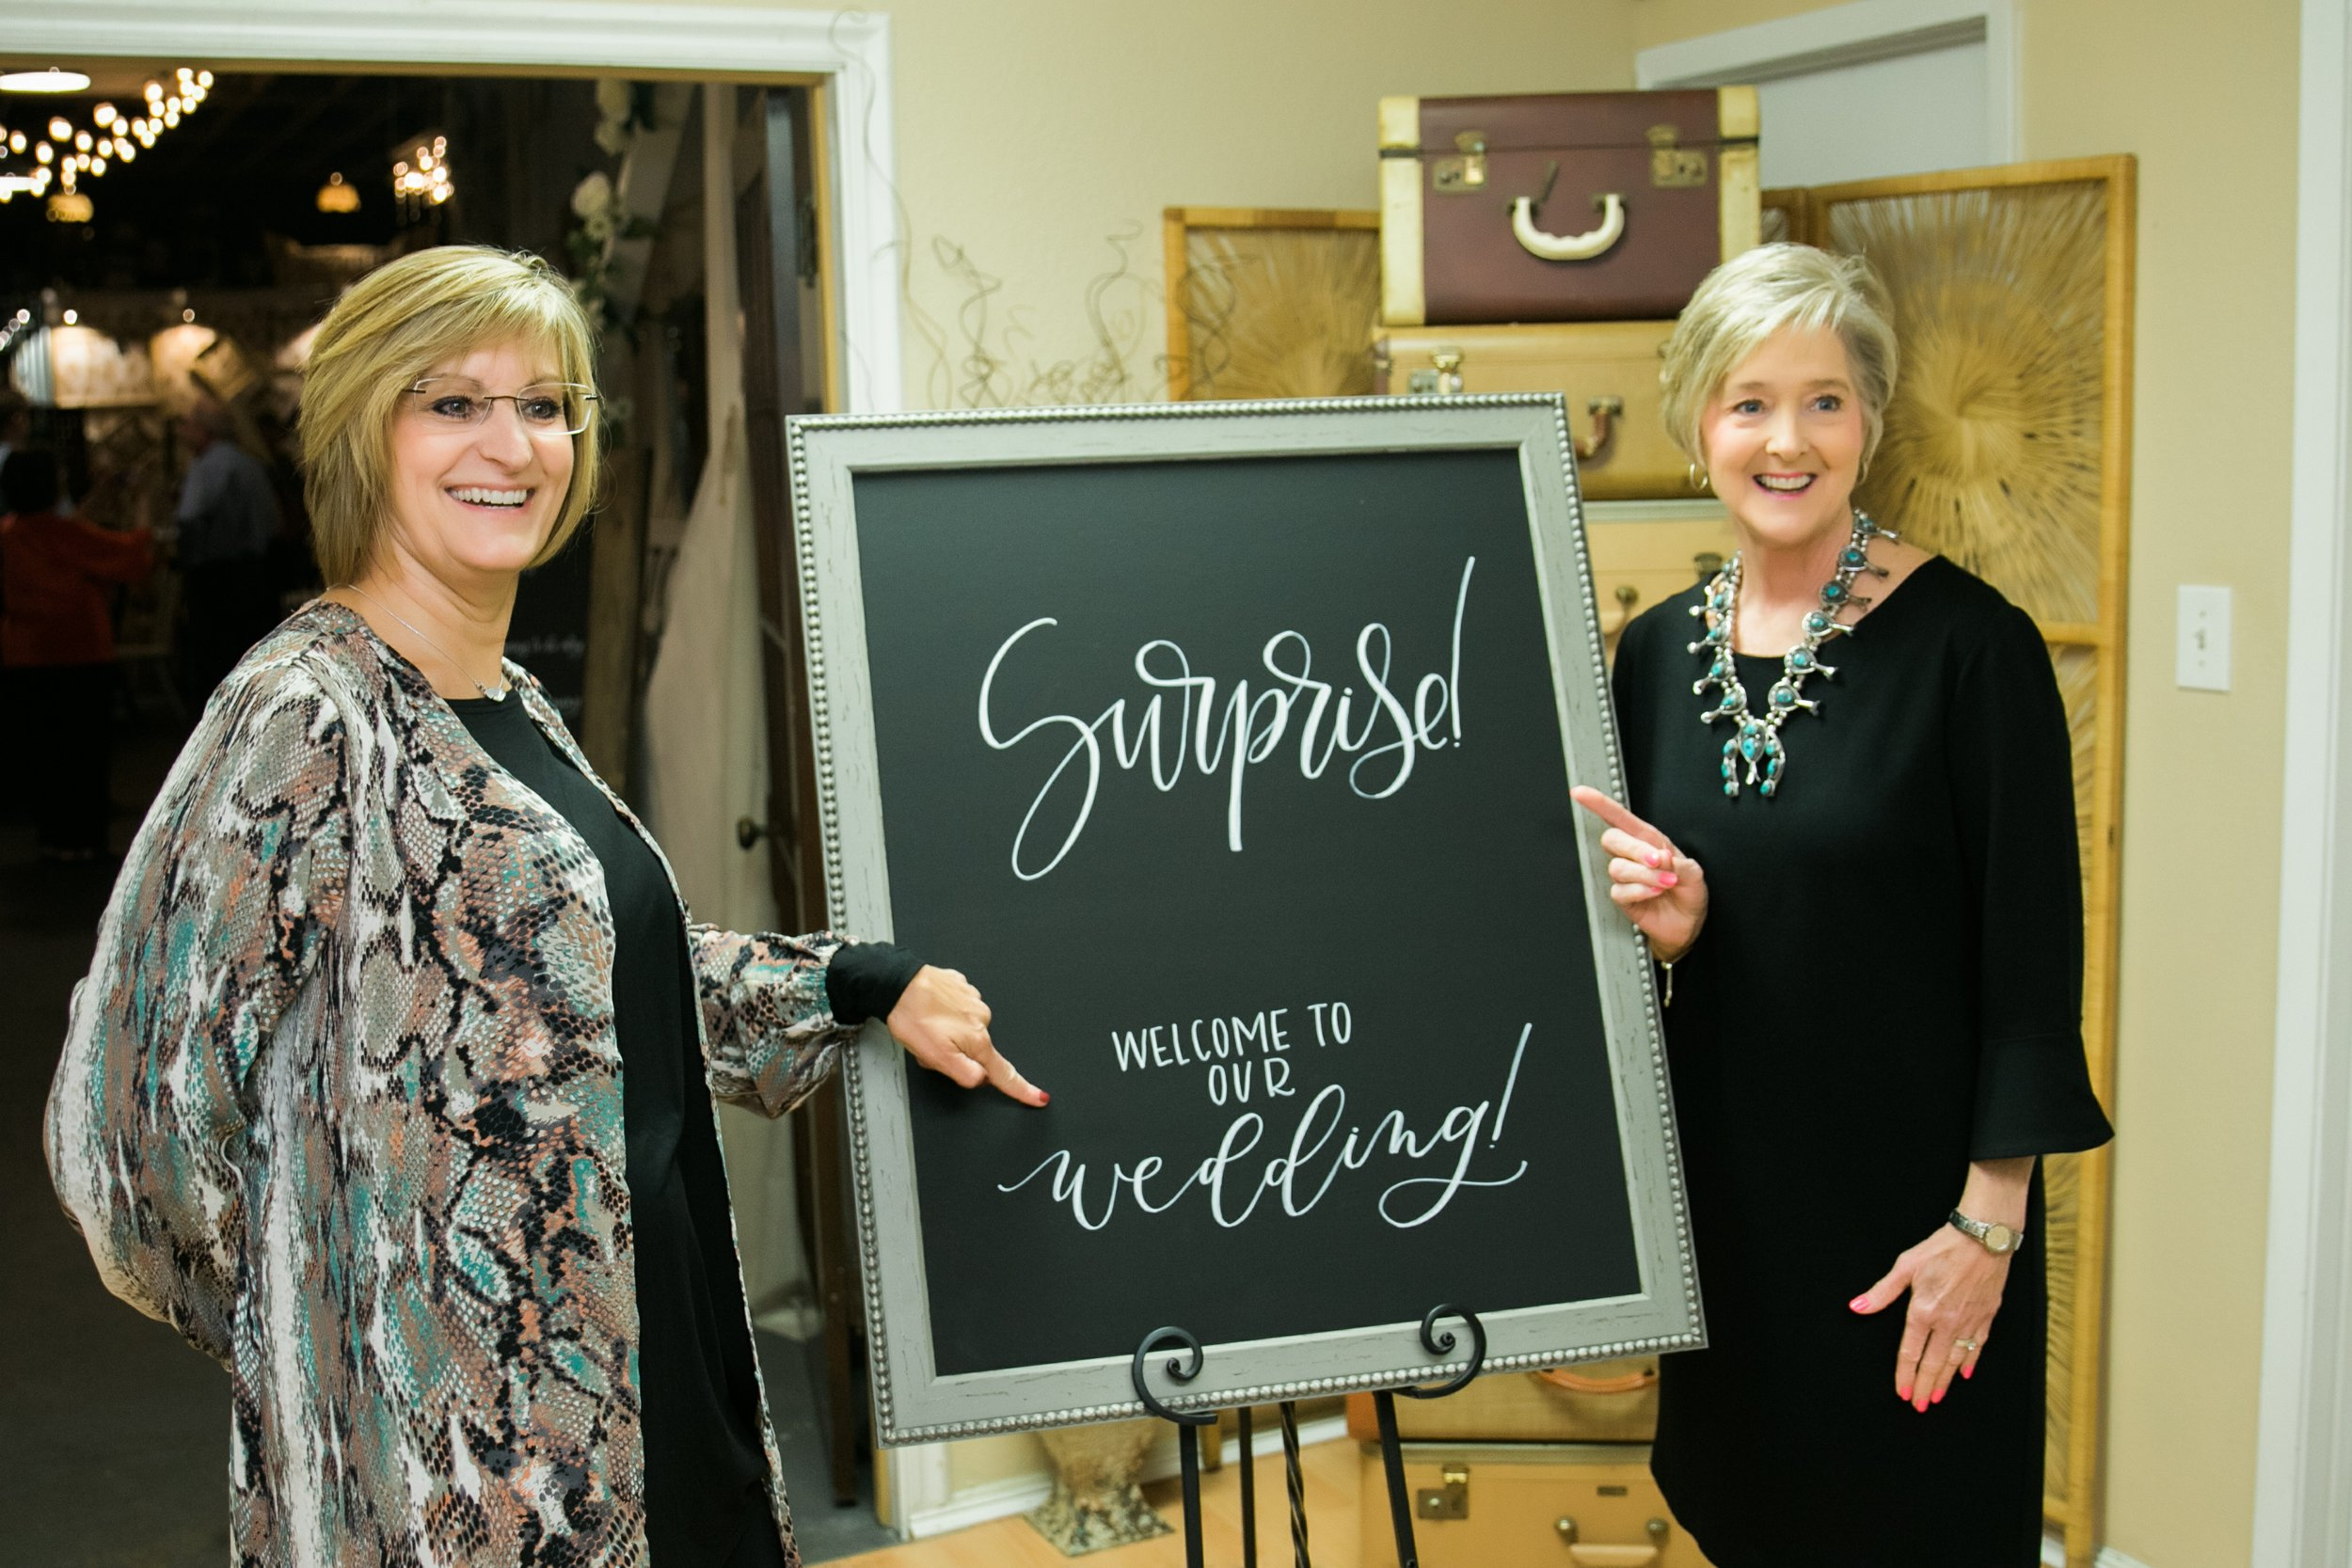 Magan-Landon-Surprise-wedding-at-southern-jeweled-warehouse-wichita-falls-texas-lauren-pinson-049.jpg